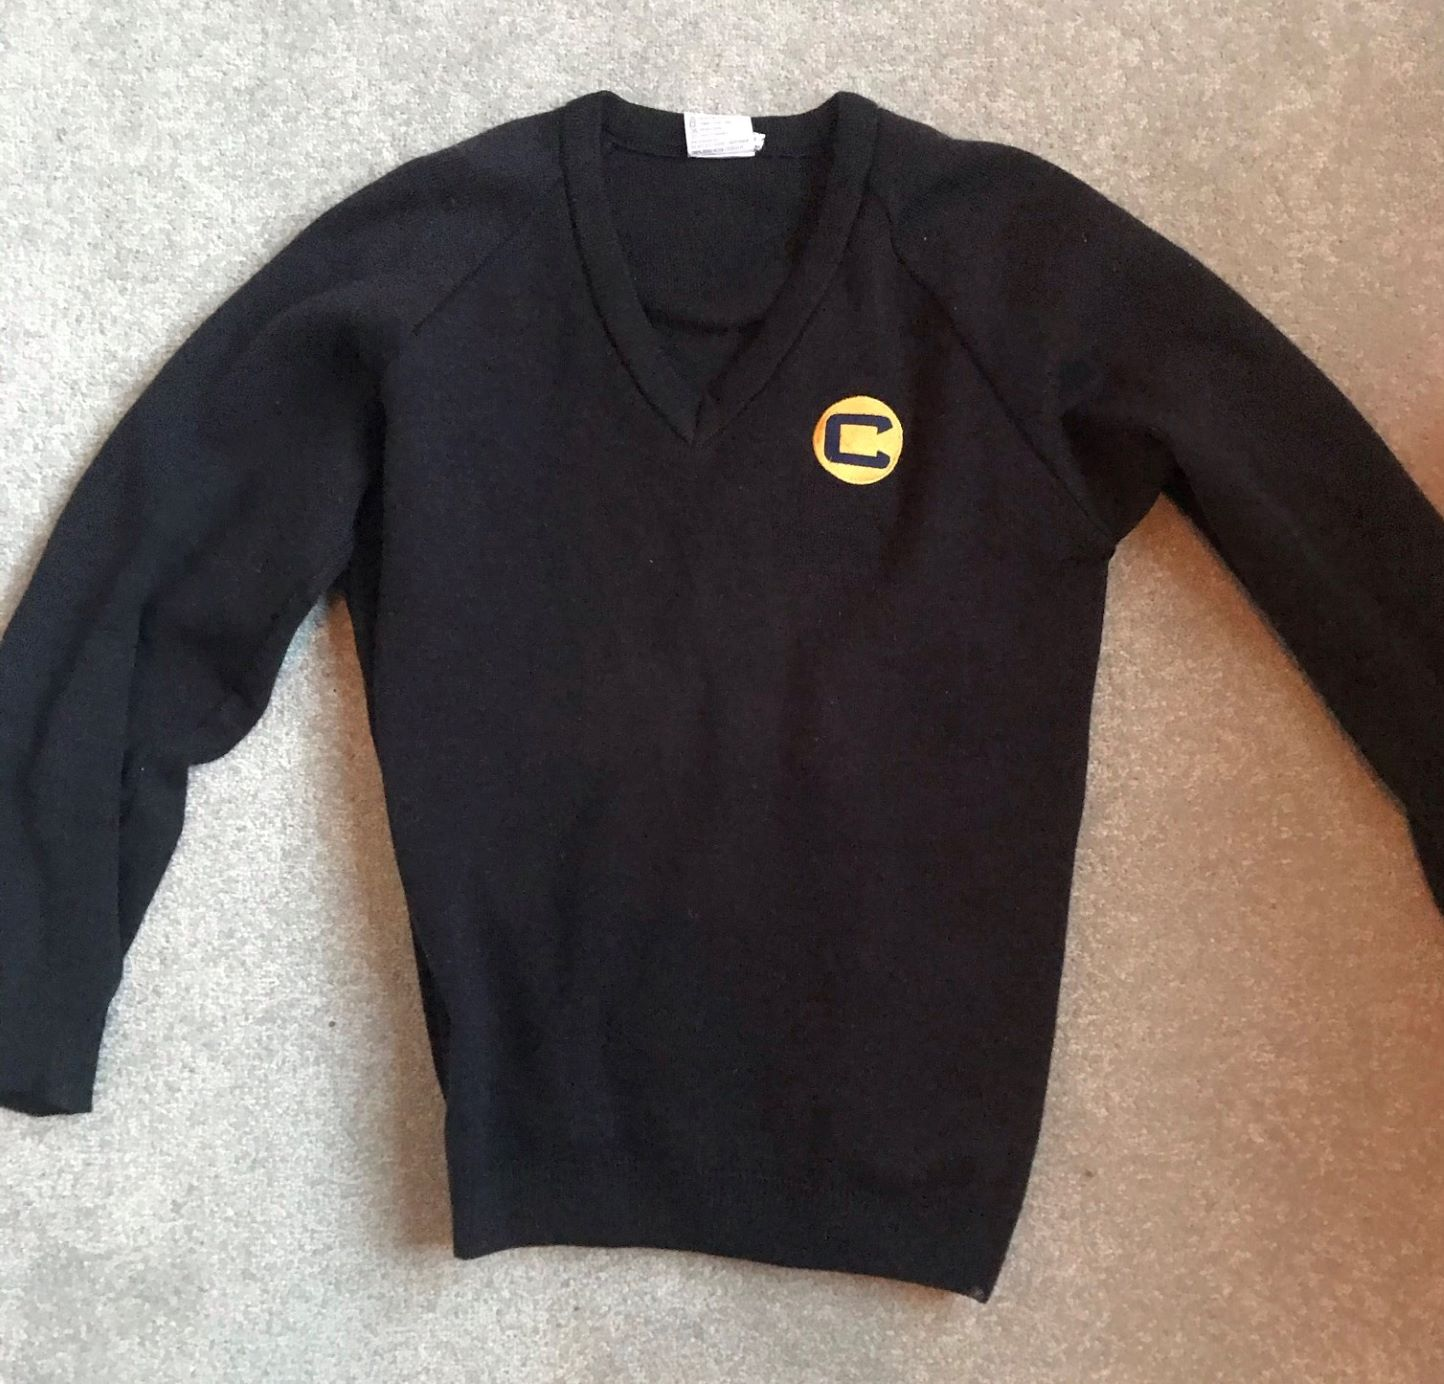 Charter North Jumper: Size 34 Marked